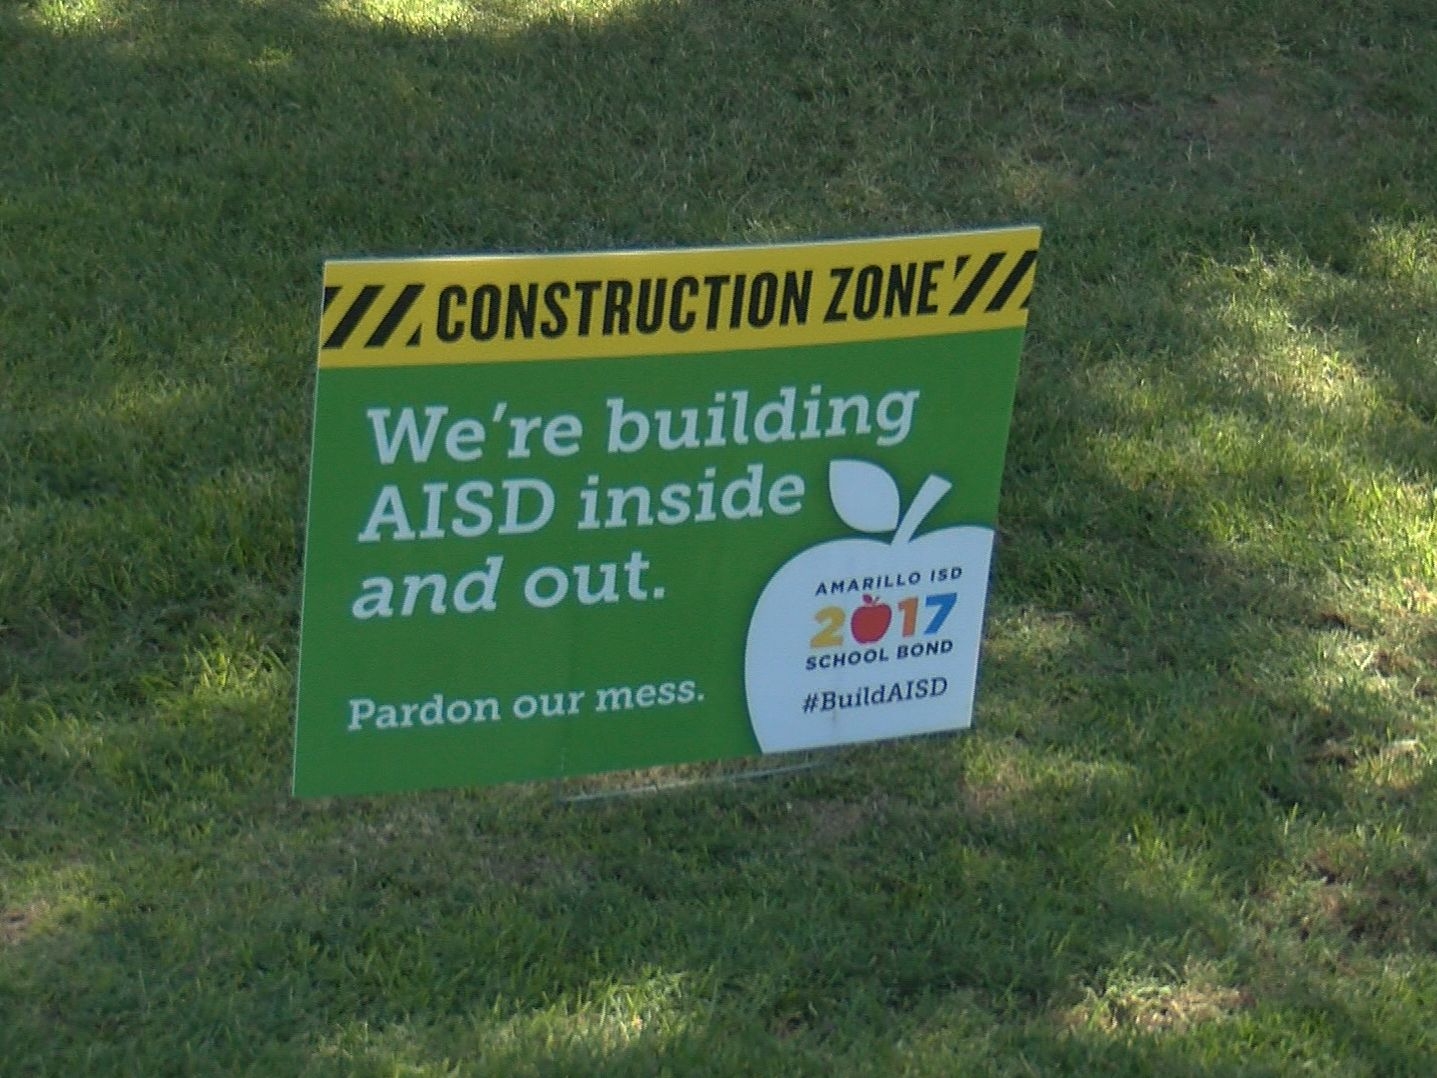 Amarillo ISD schools see results from 2017 bond construction project